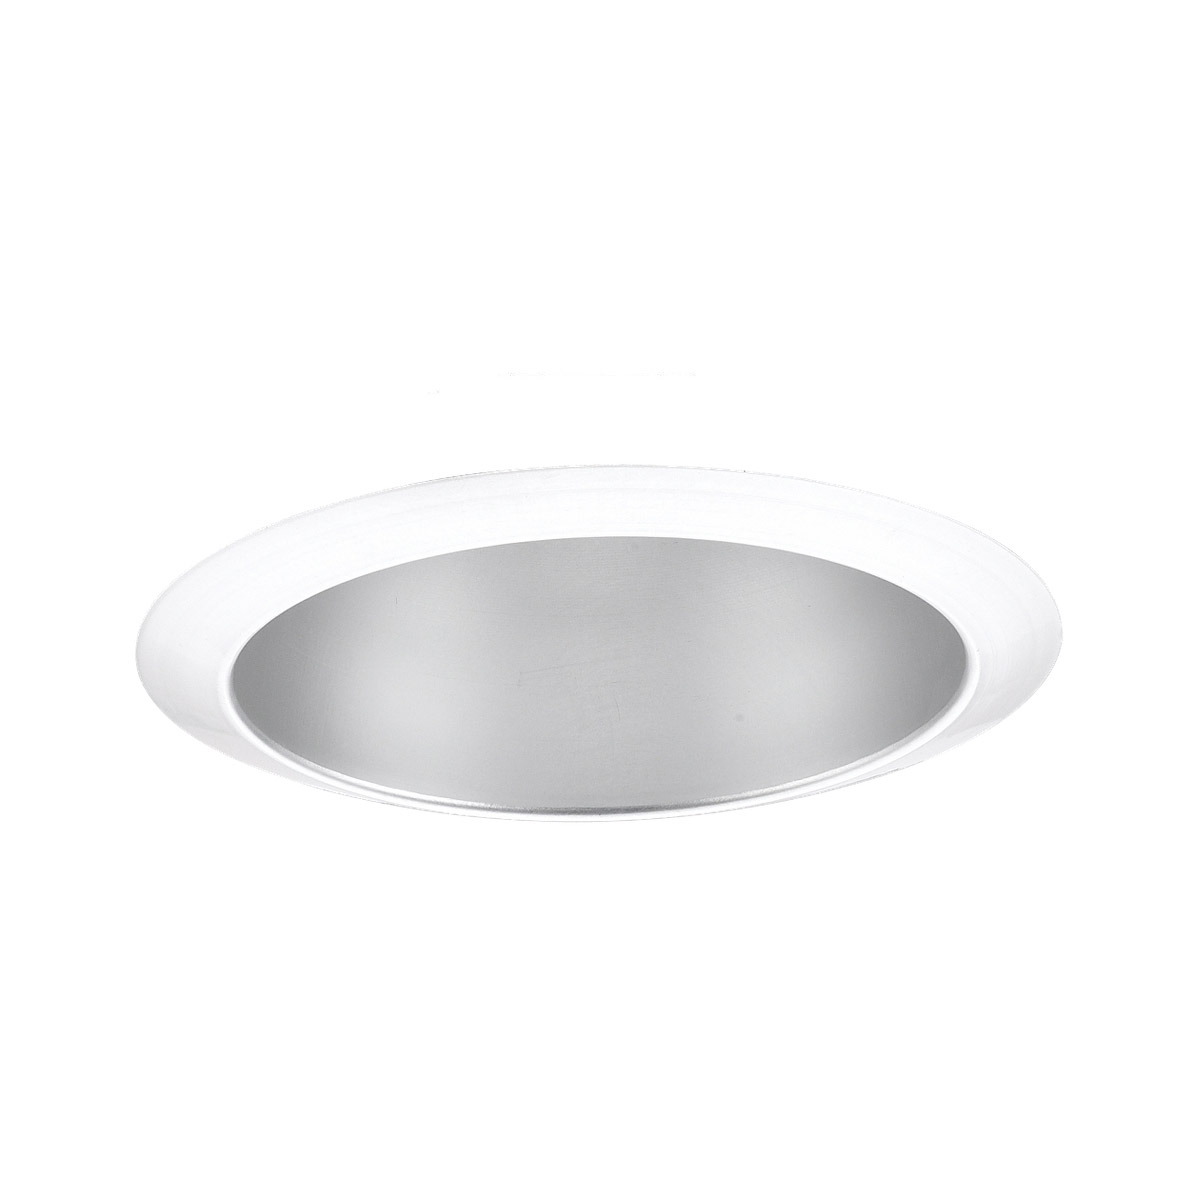 Sea Gull Lighting Signature Recessed Trim Only in Satin Nickel - White 11032AT-861